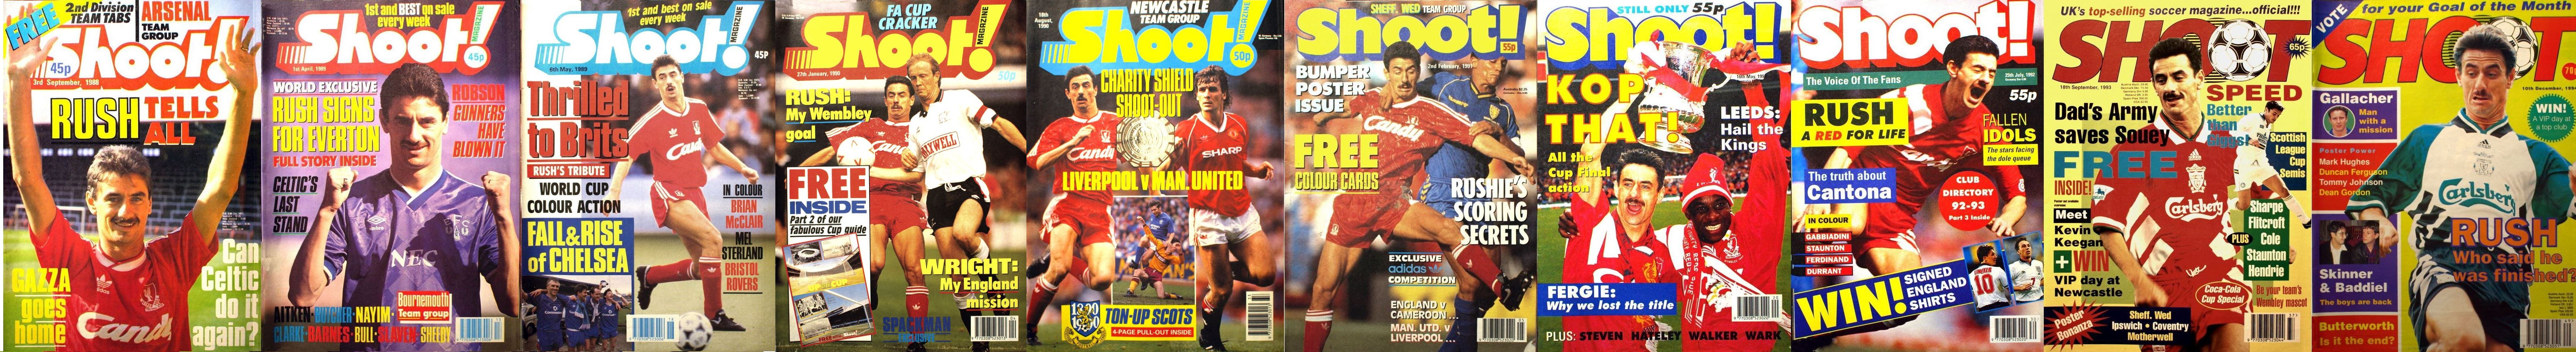 Ian Rush on the cover of Shoot! 1988-1994